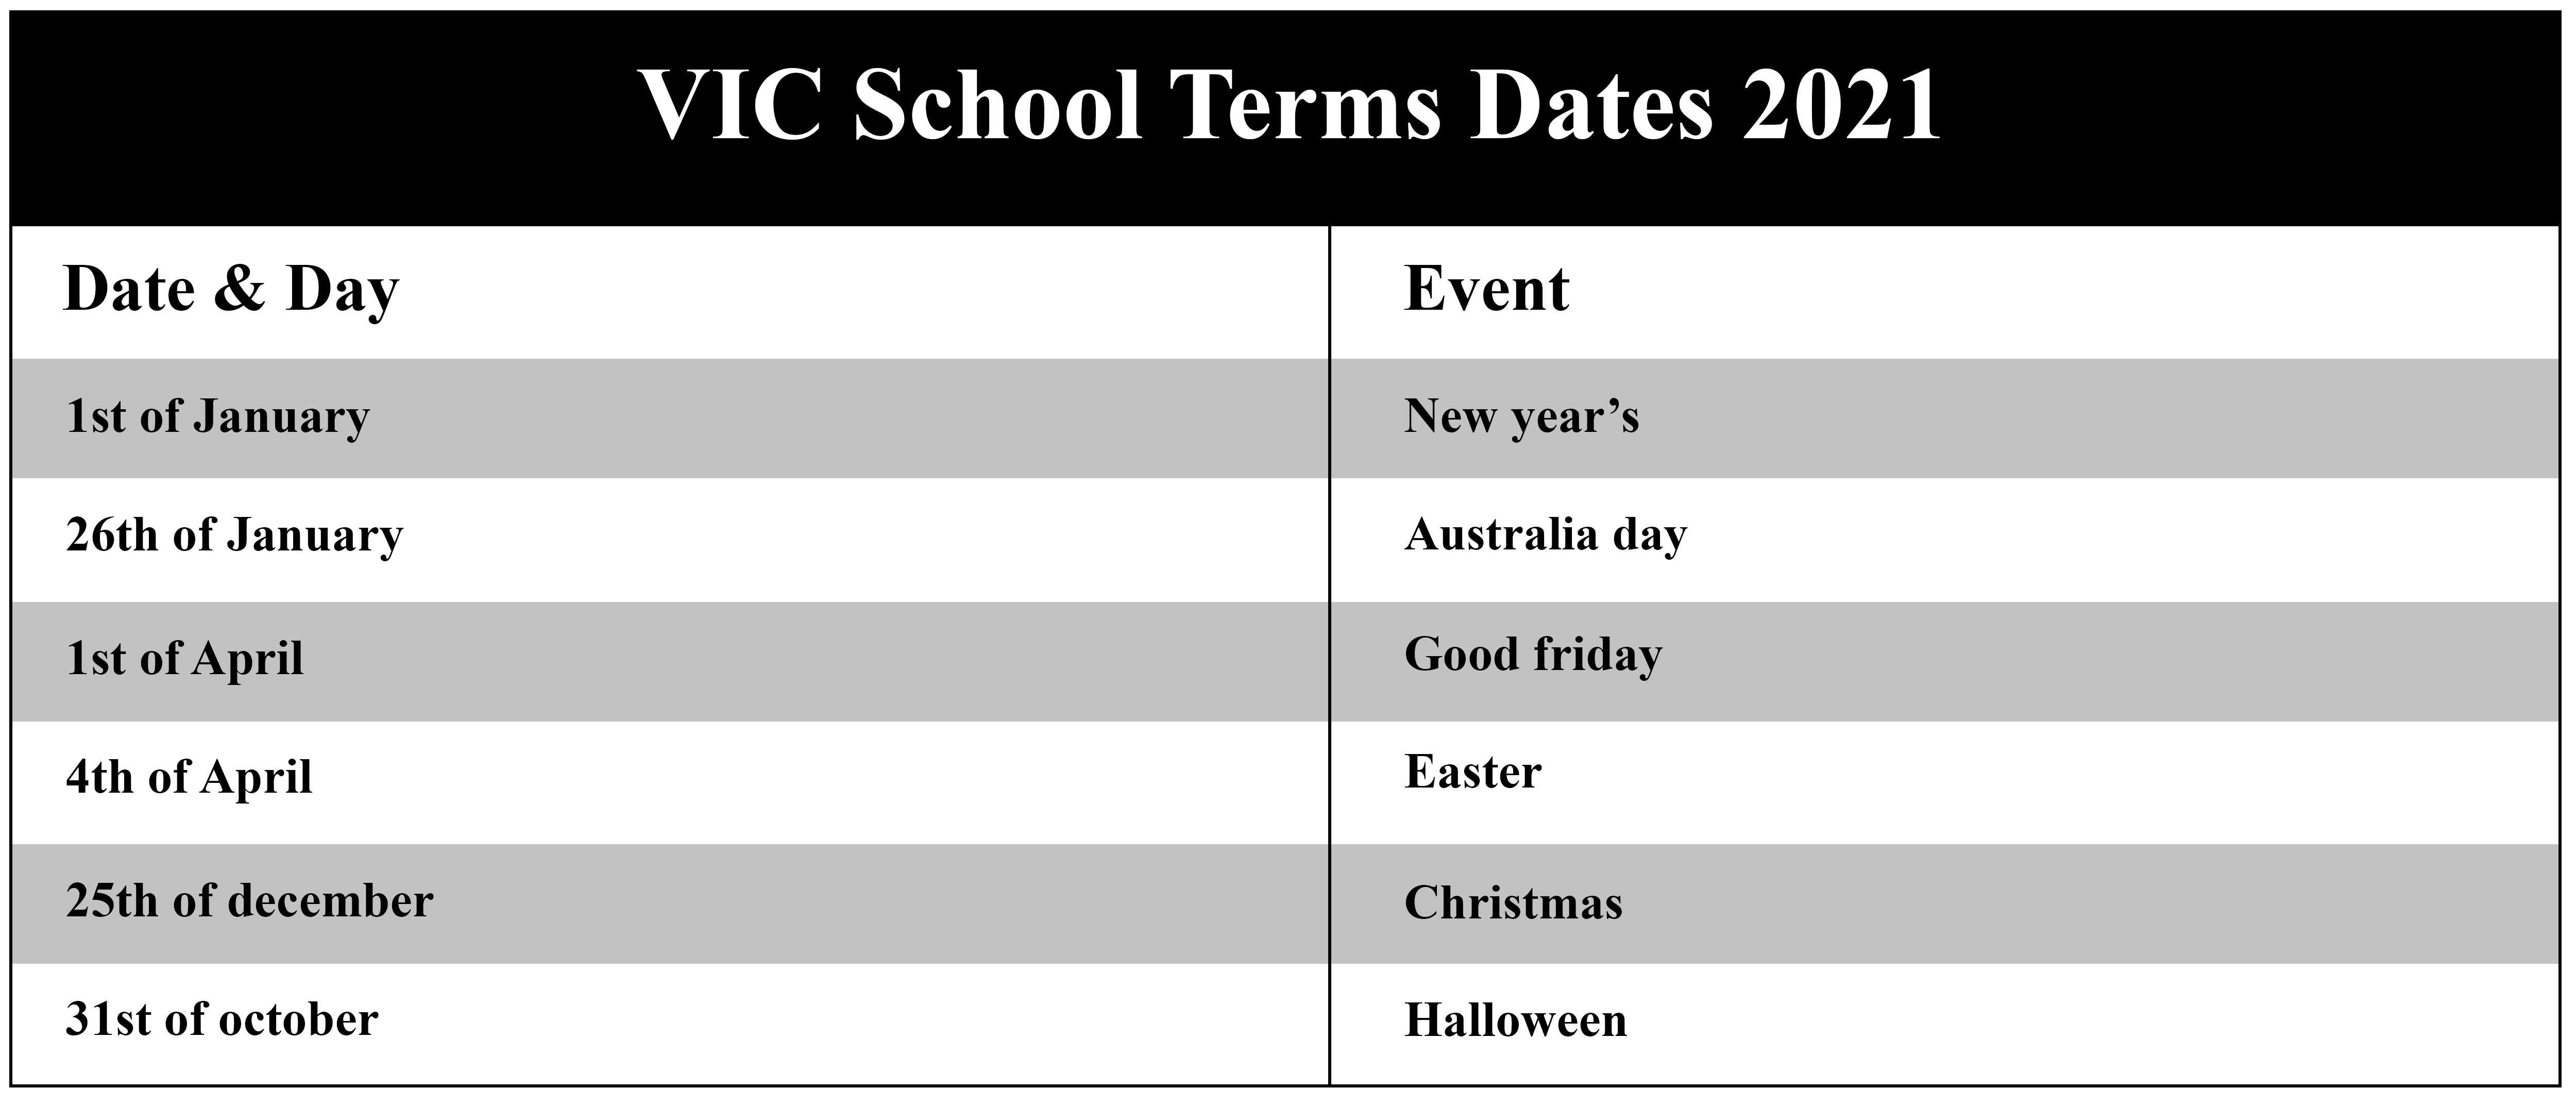 2021 Vic School Holidays Calendar With Terms Date | Vic School Holidays Calendar 2019 Vic School Holidays